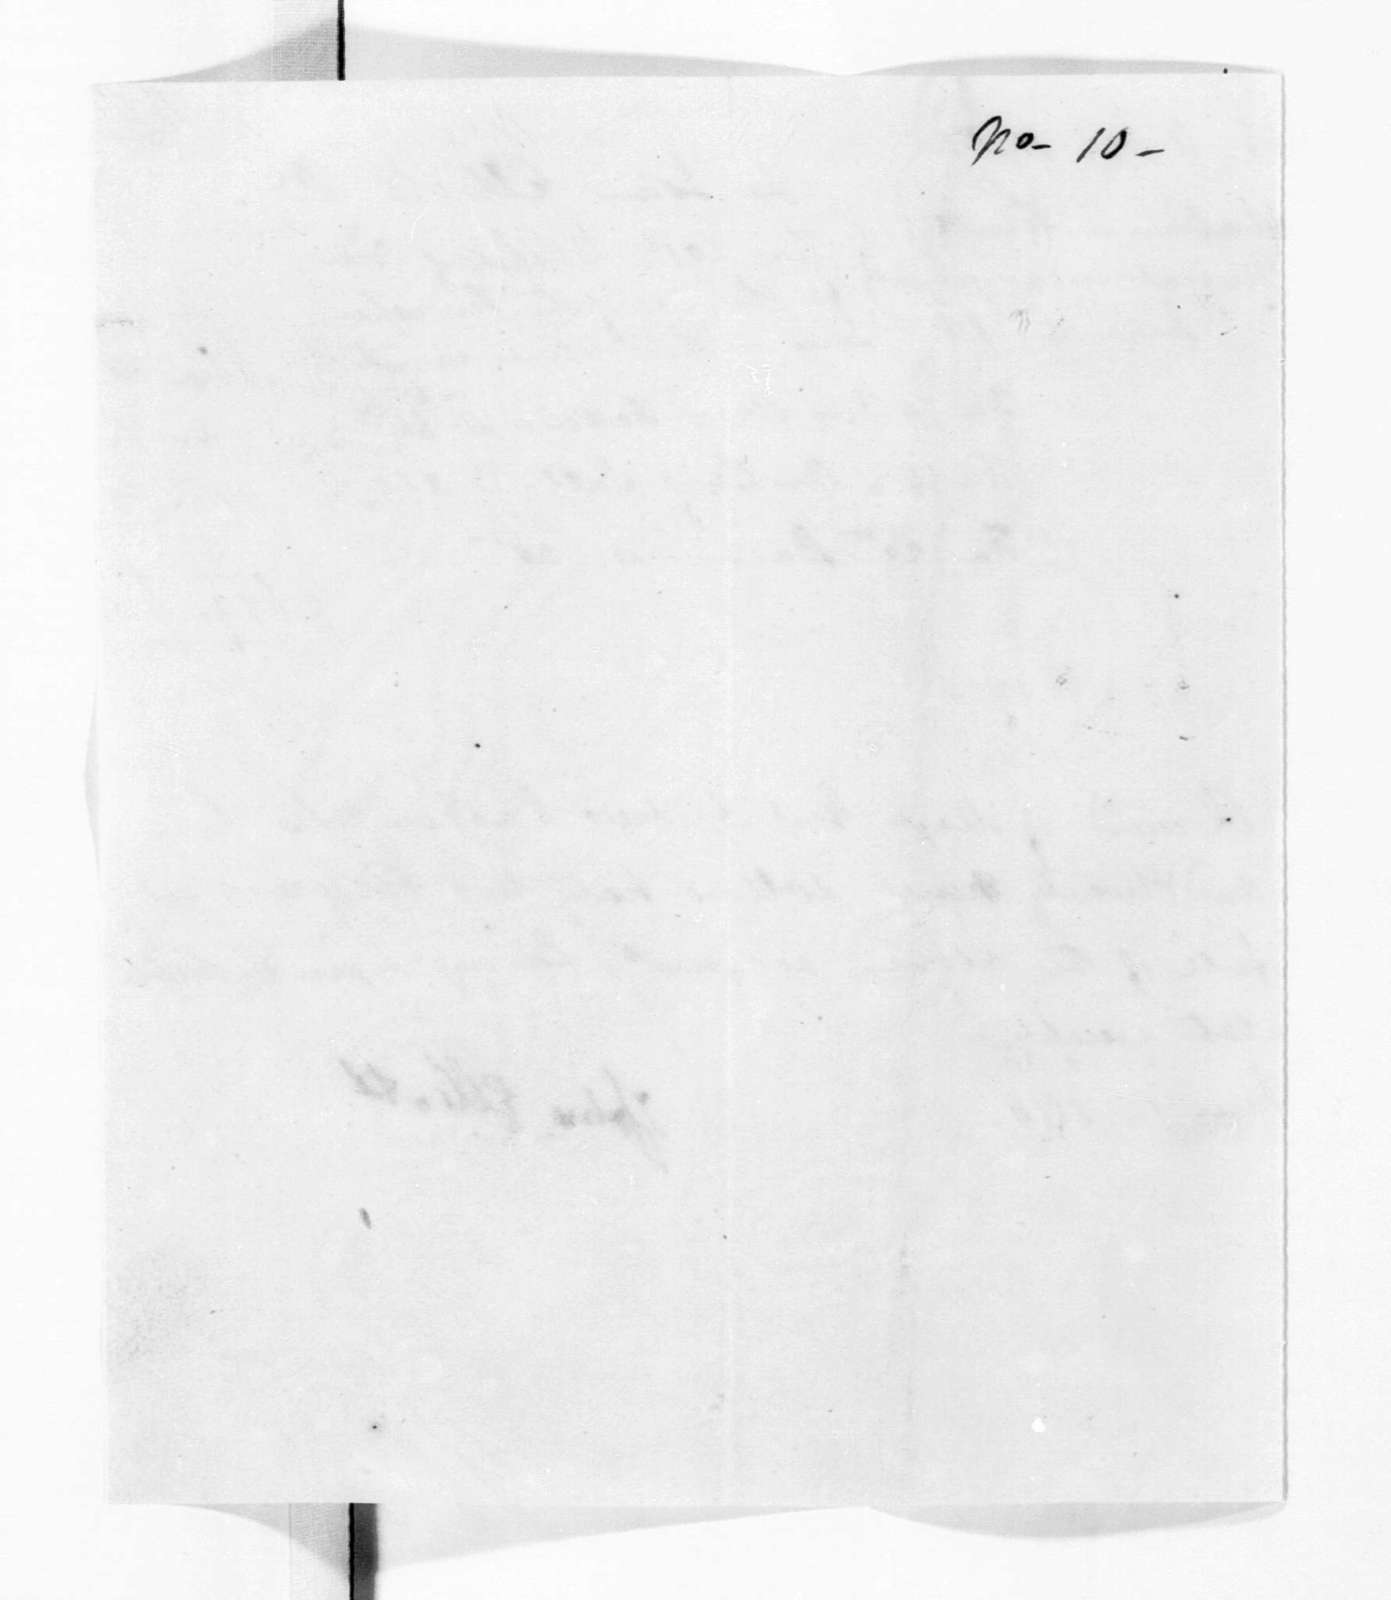 Military Papers - December 18, 1816 - June 30, 1818, Vol. X